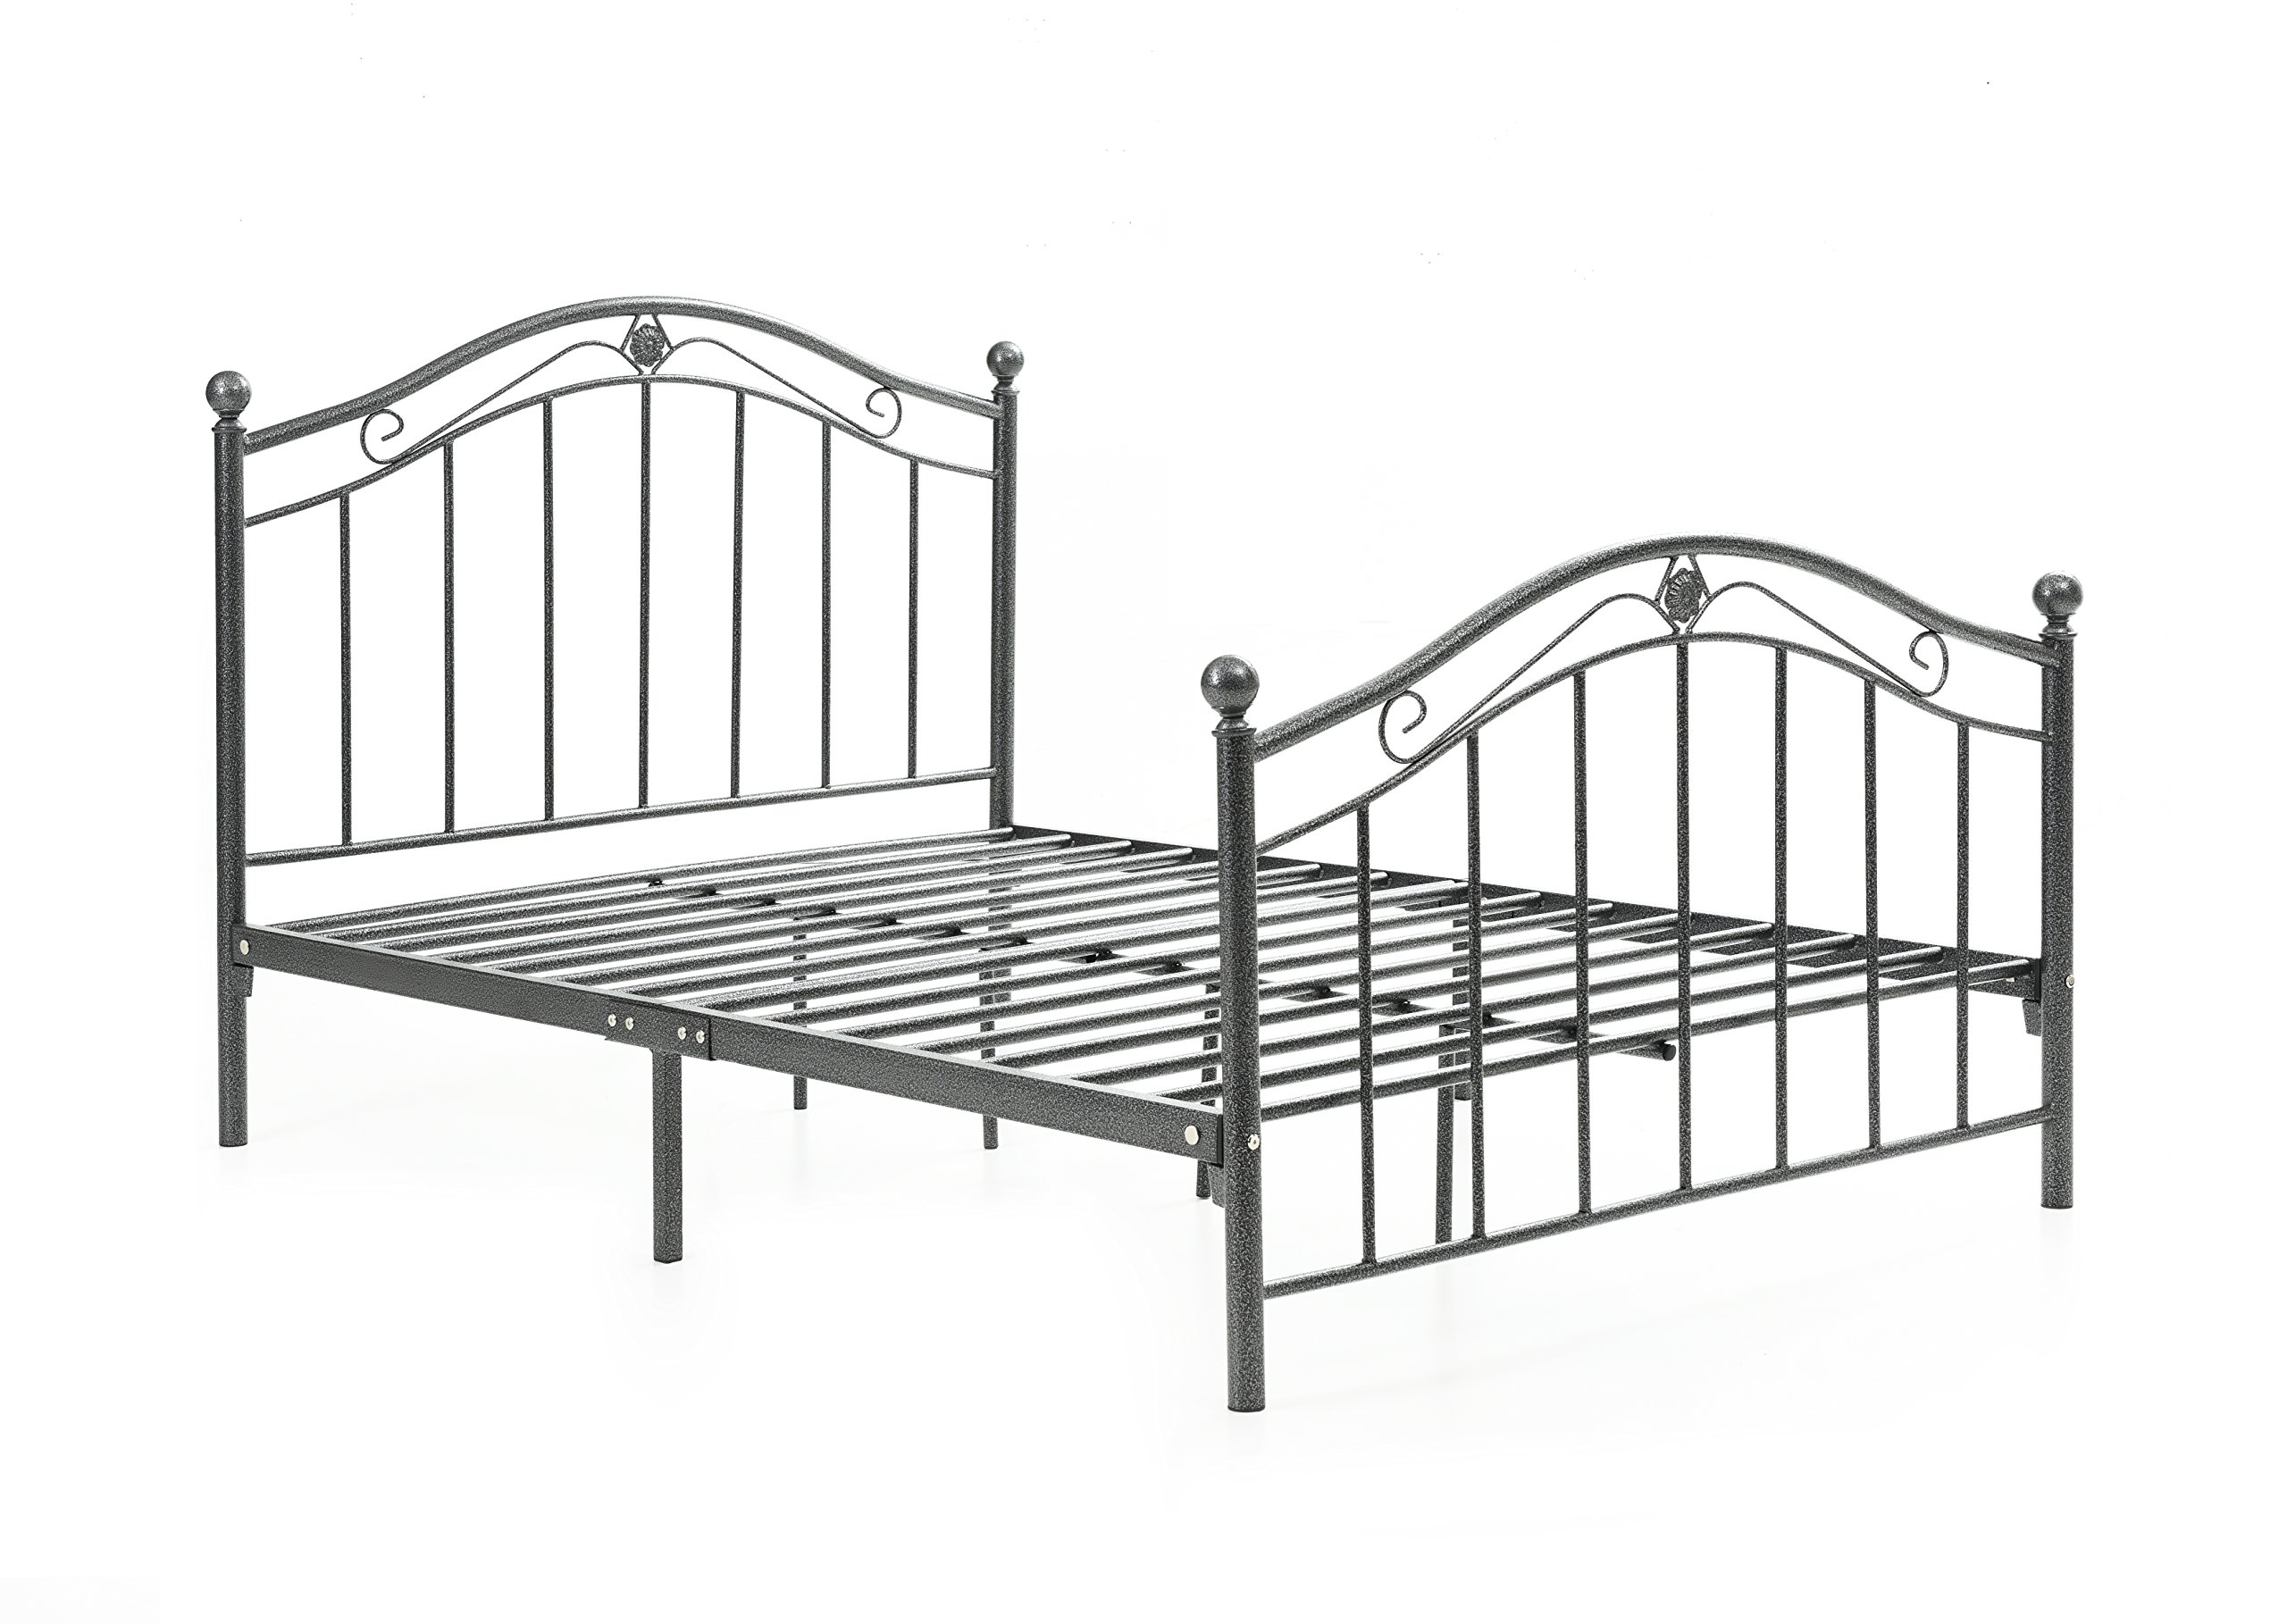 Hodedah Complete Metal Bed with Headboard, High Footboard, Slats and Rails, Twin Size, Charcoal